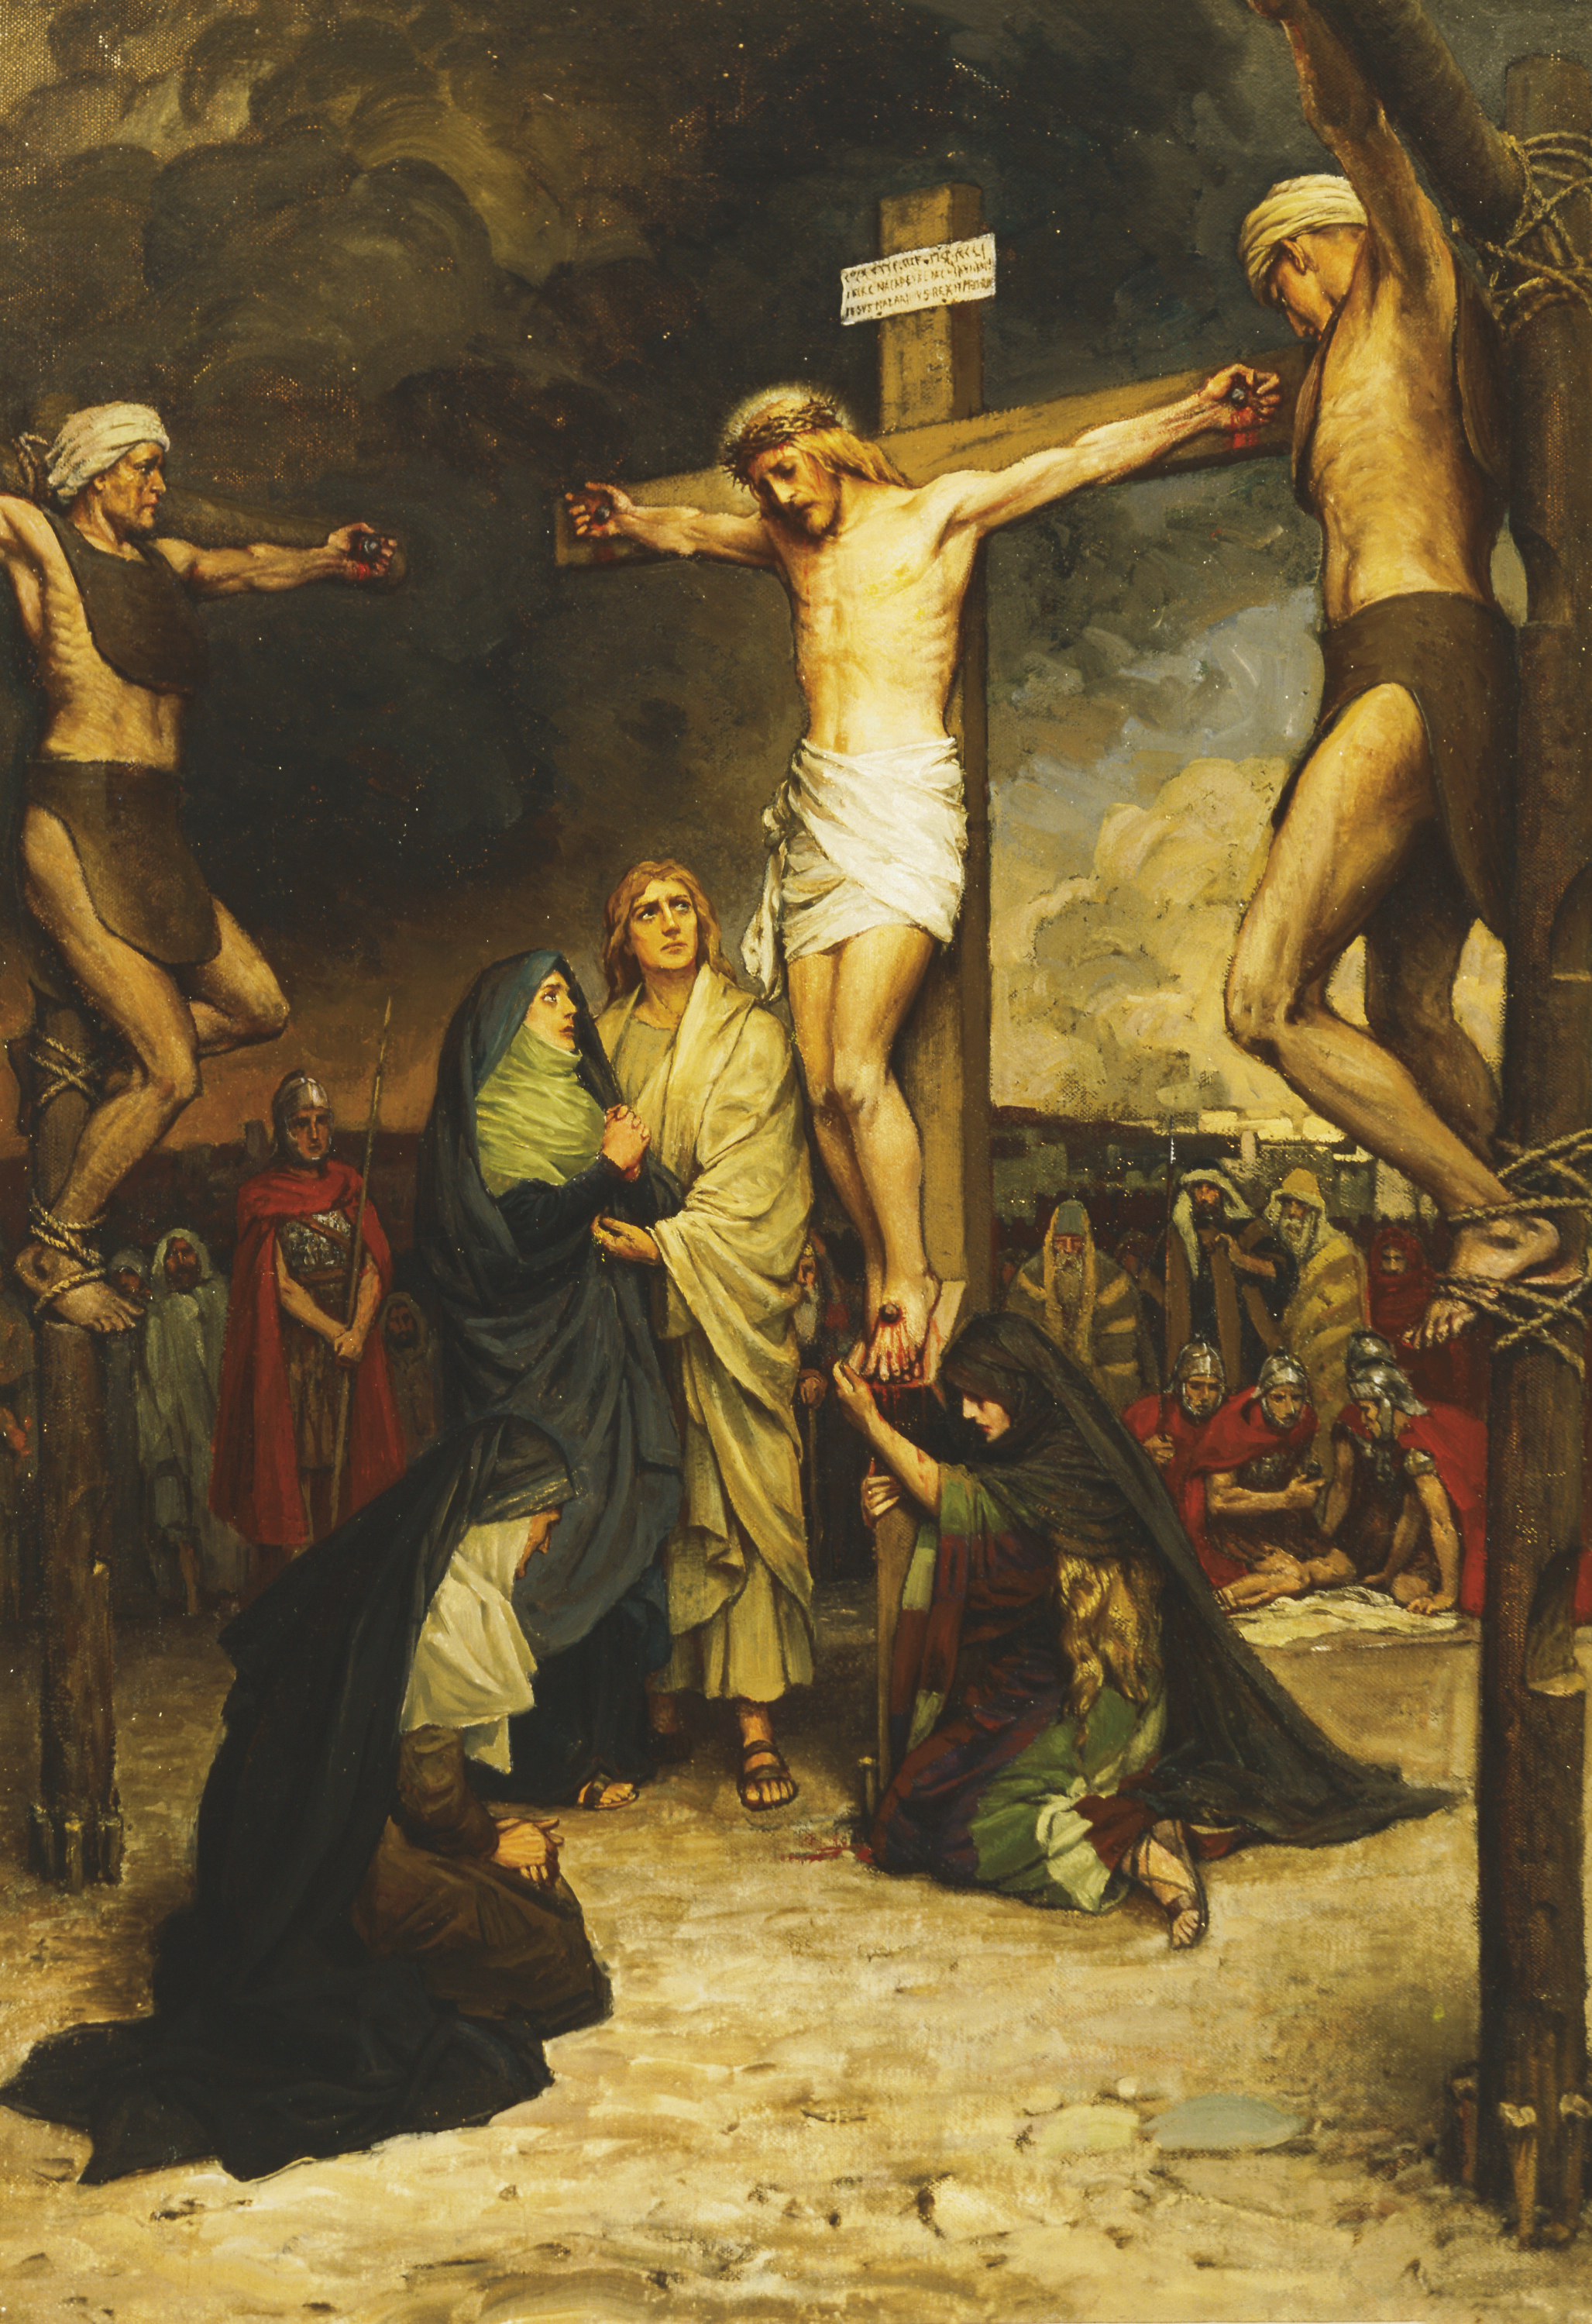 The Crucifixion of Christ, artist unknown